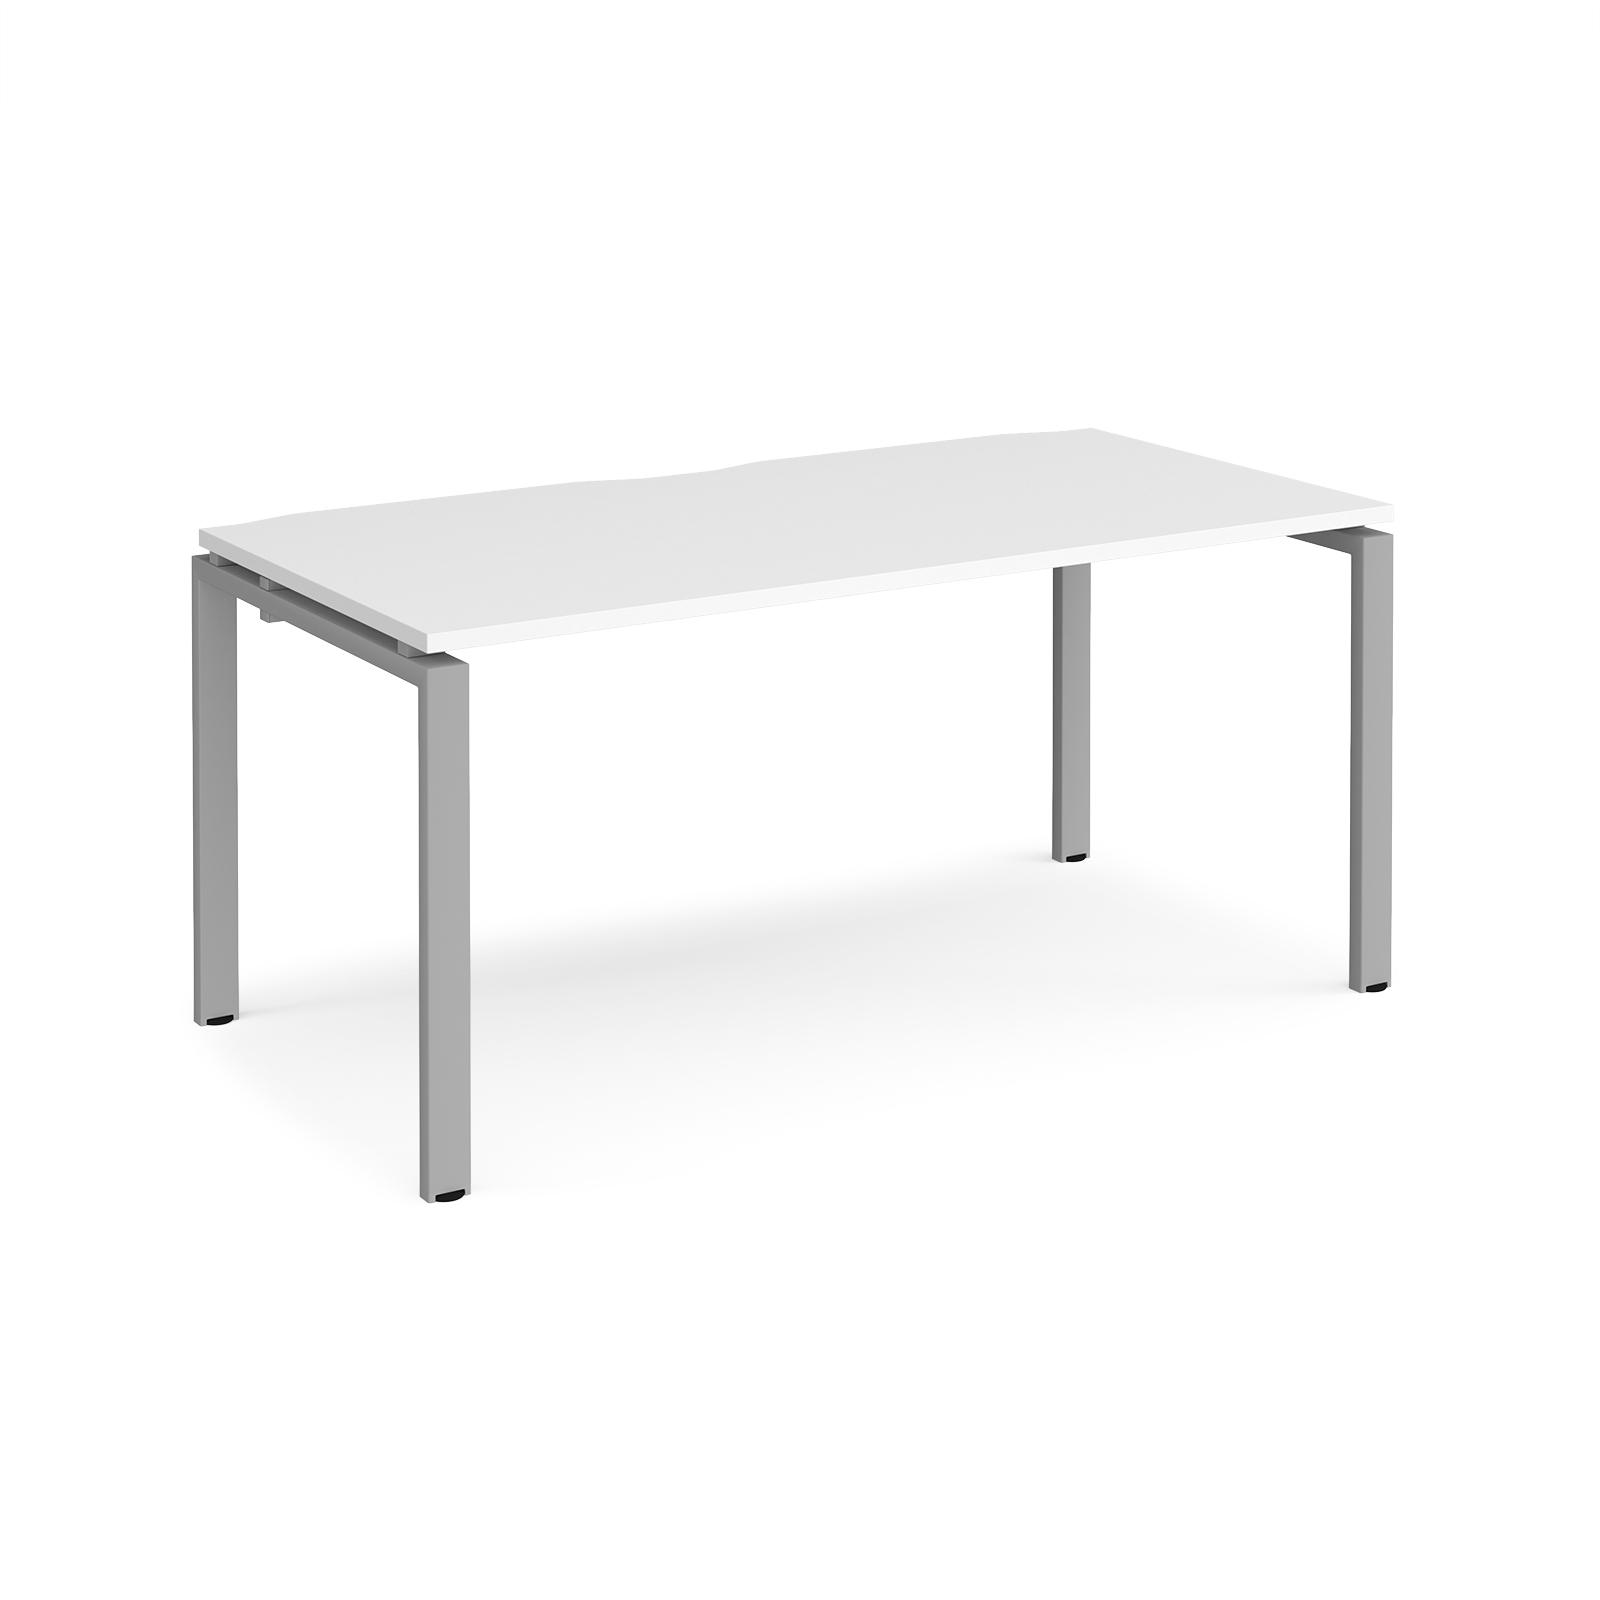 Adapt II Single Desk 1600mm x 800mm - Silver Frame, White Top